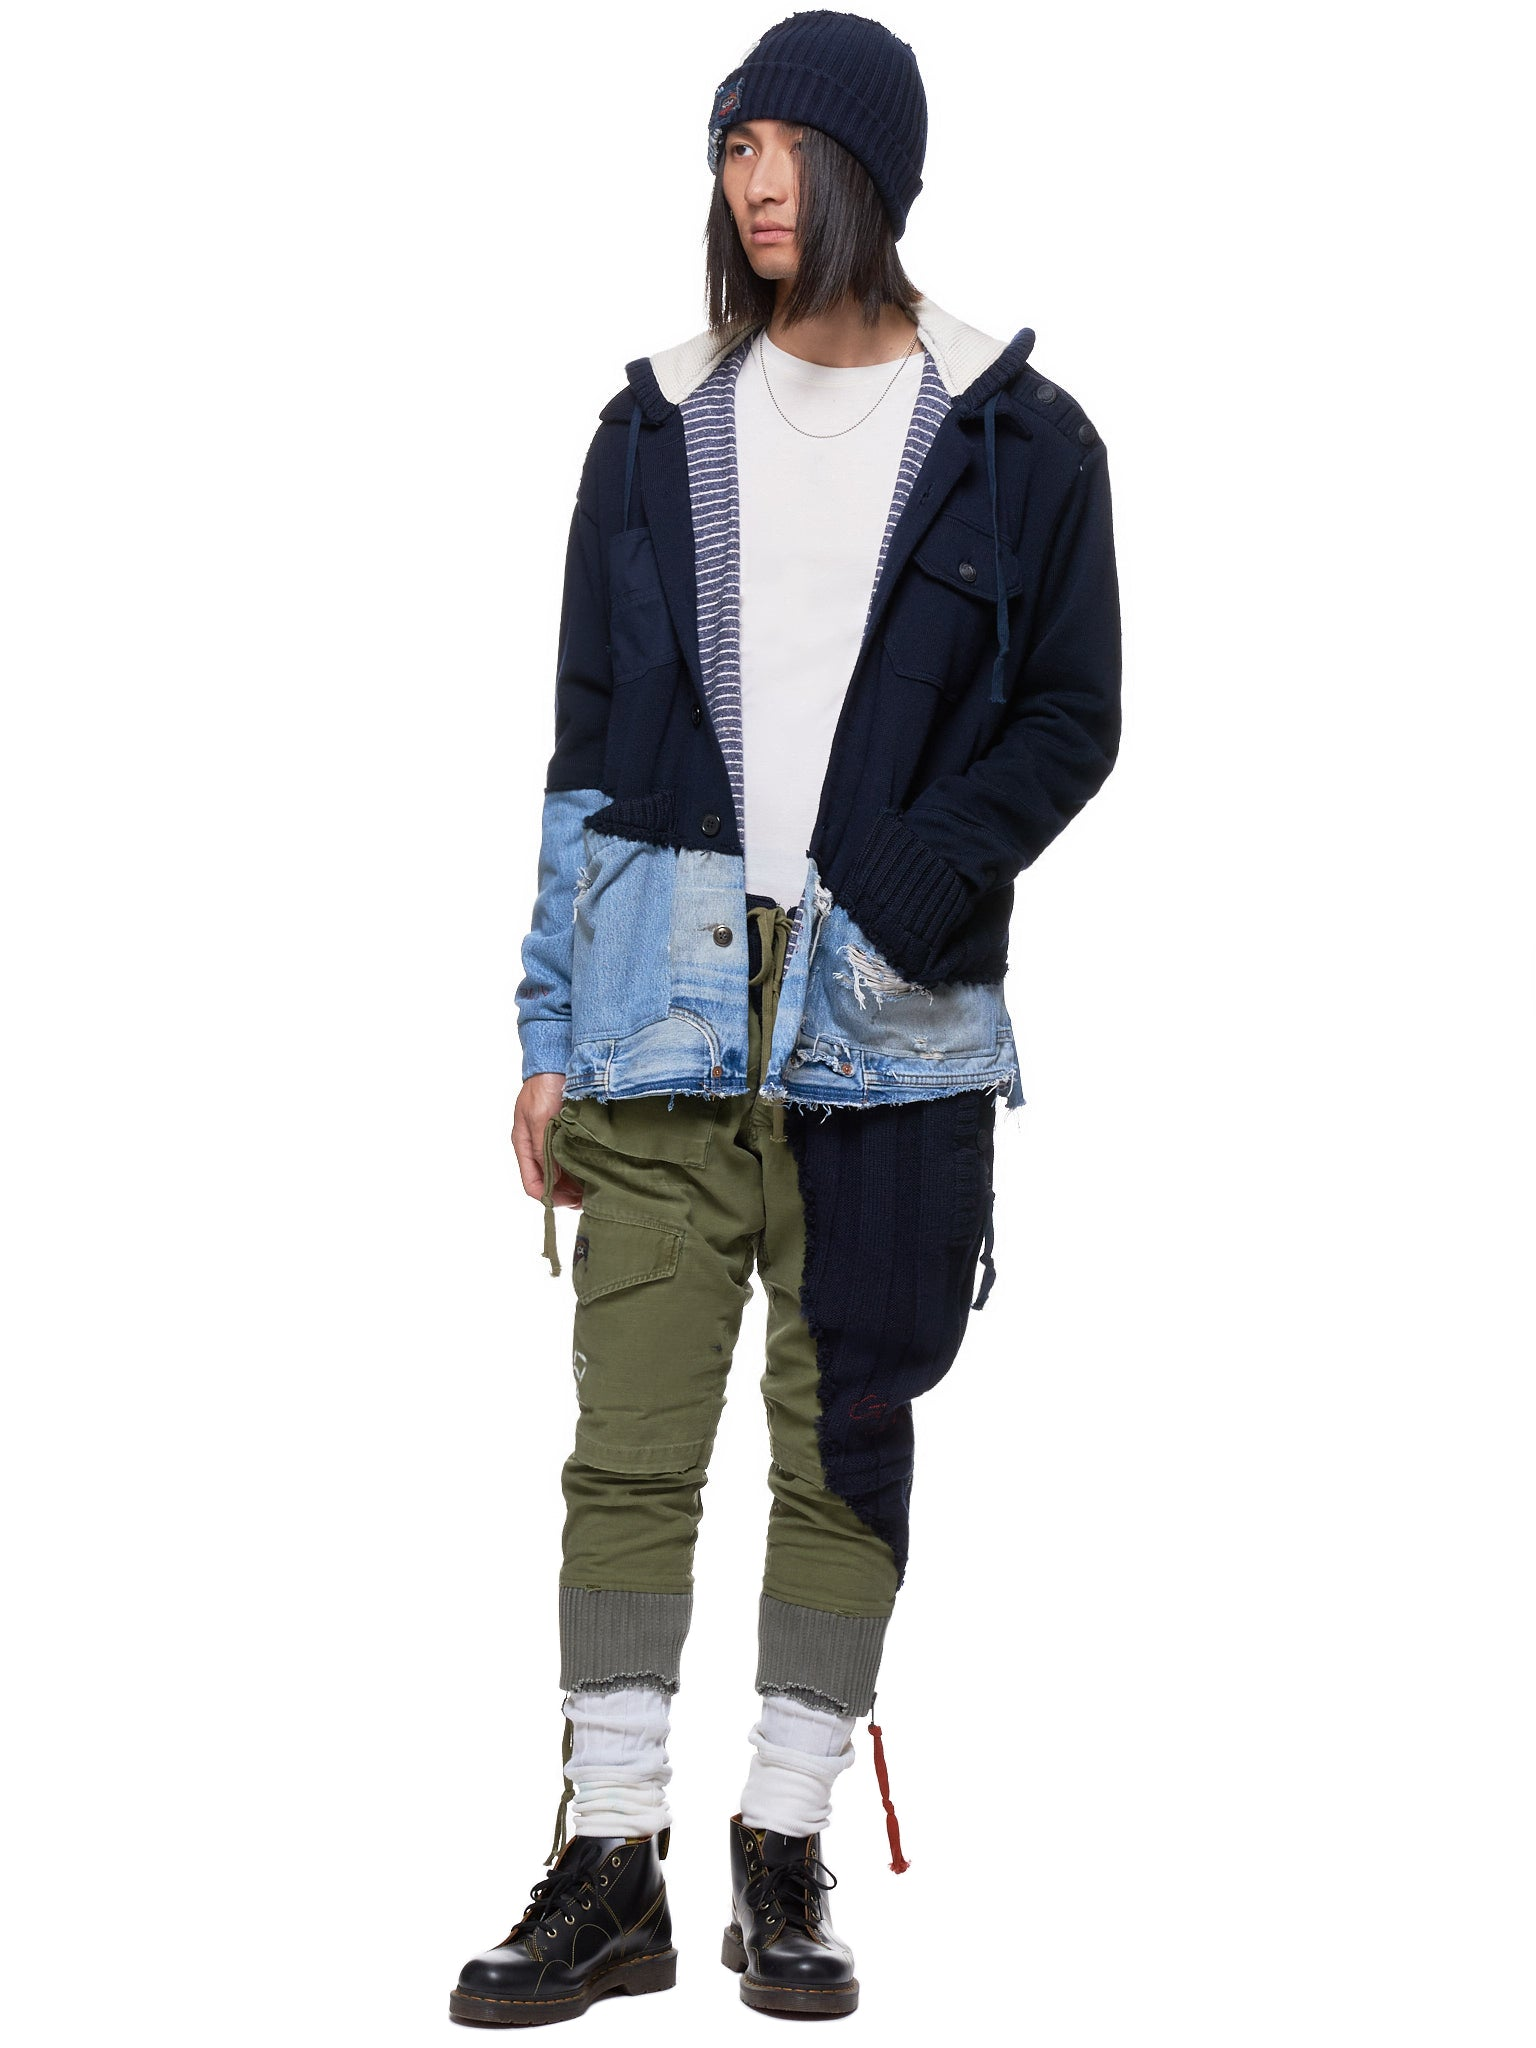 Greg Lauren x Paul & Shark Jacket - Hlorenzo Style